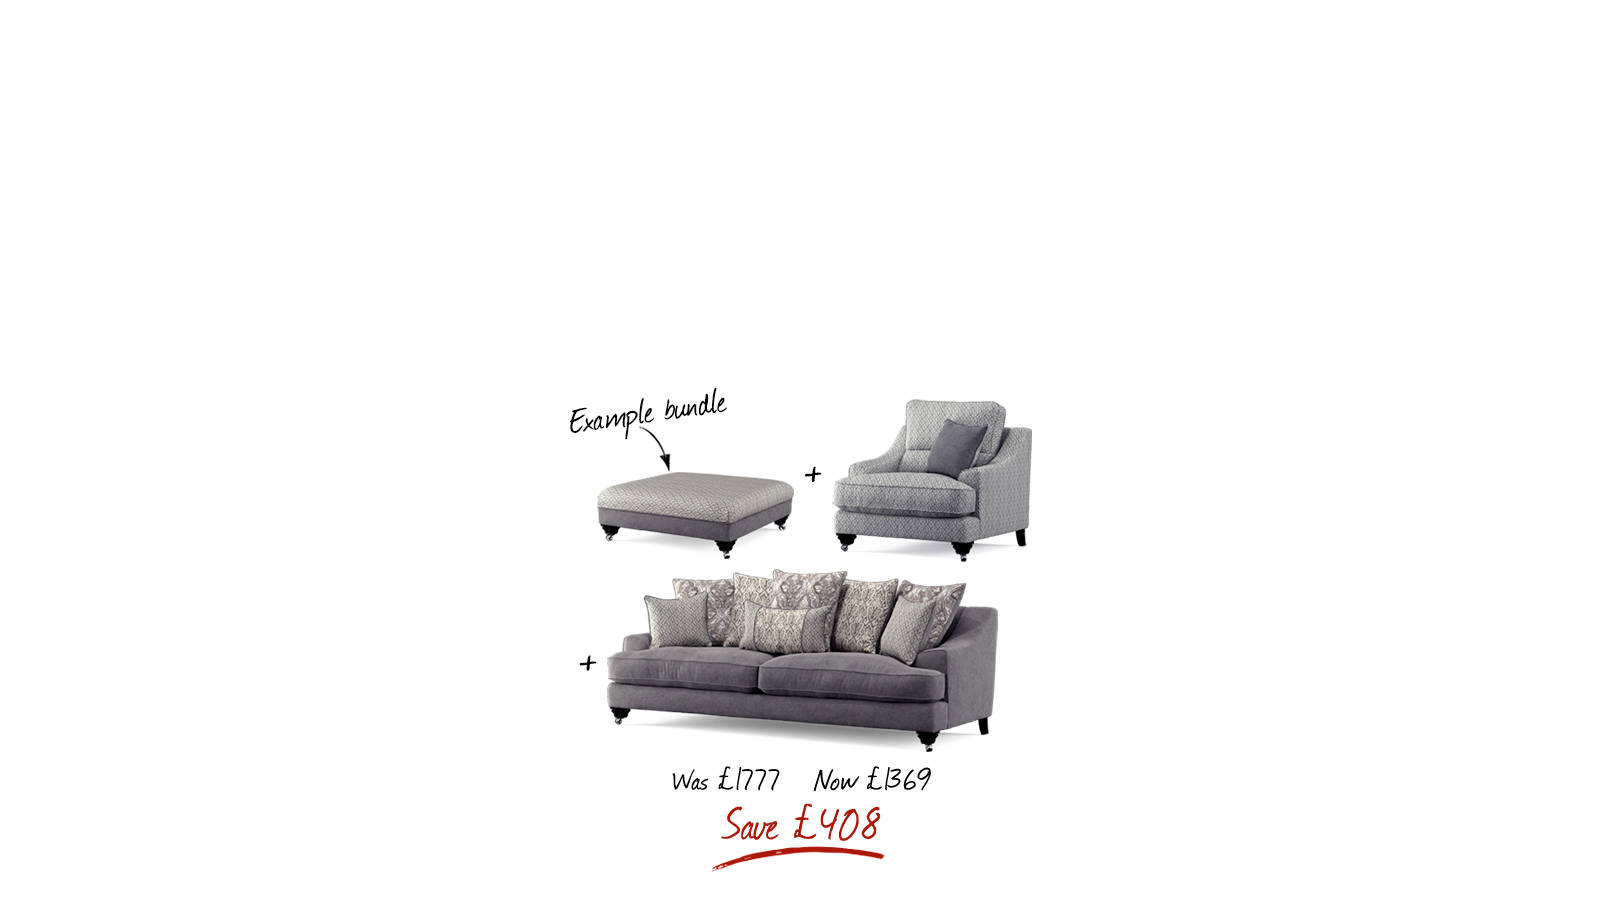 Example of outlet bundle made up of sofa, chair and footstool